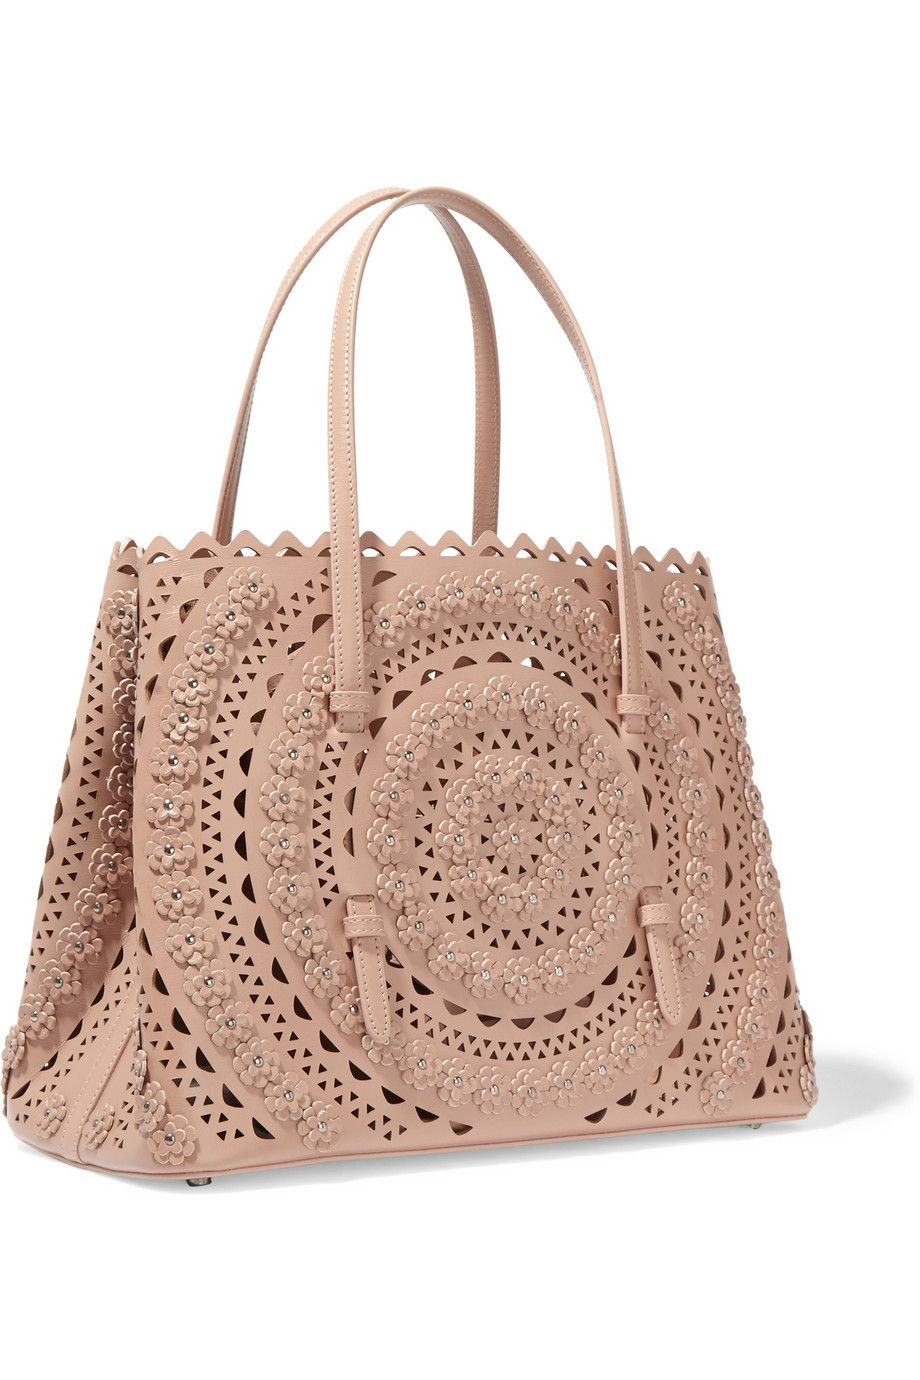 Alaia Nude leather tote Jm4reB5KP